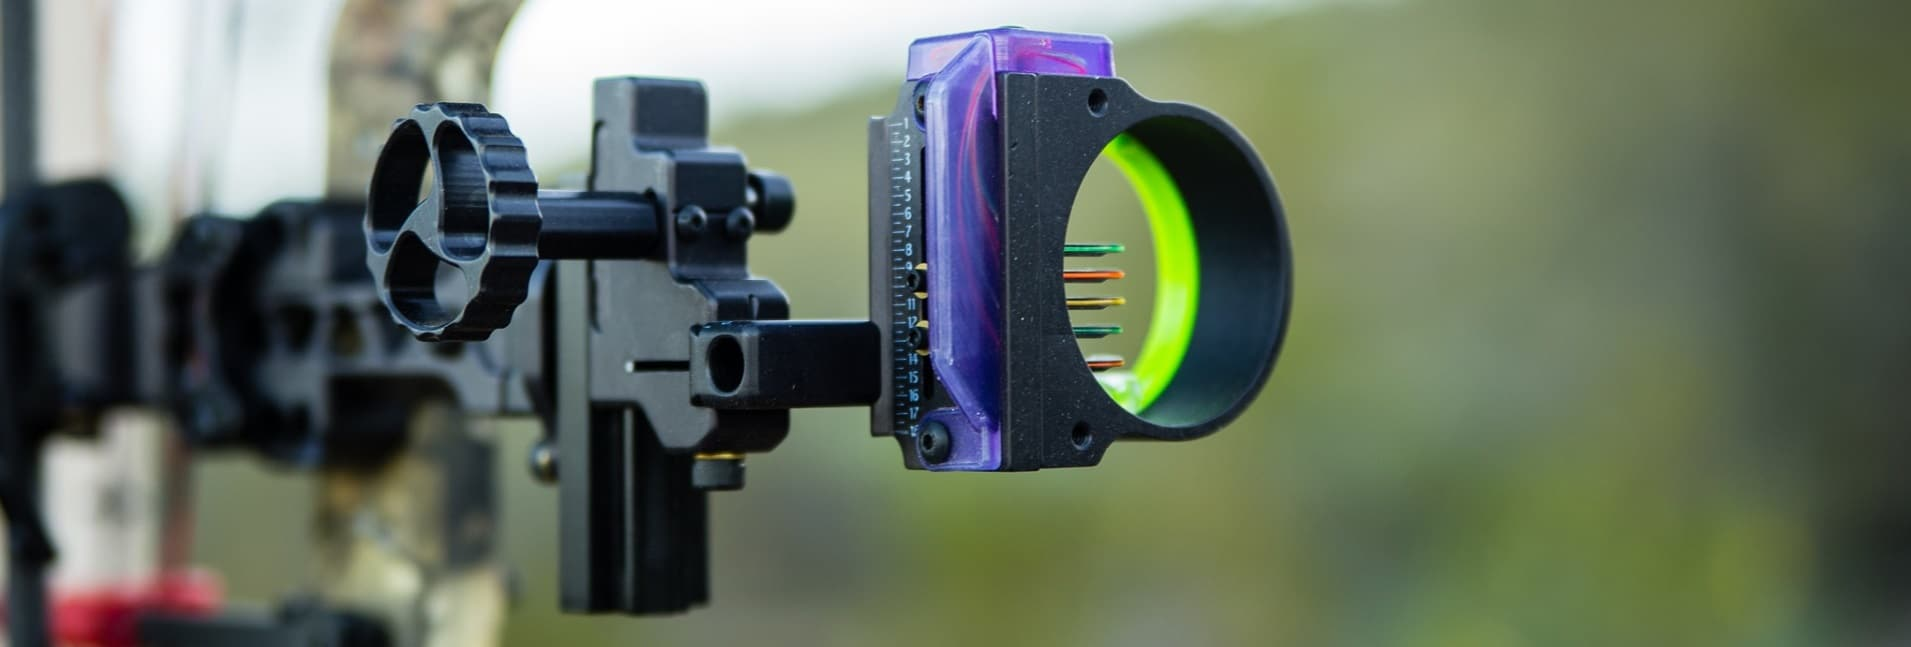 Best Bow Sights Reviewed in Detail